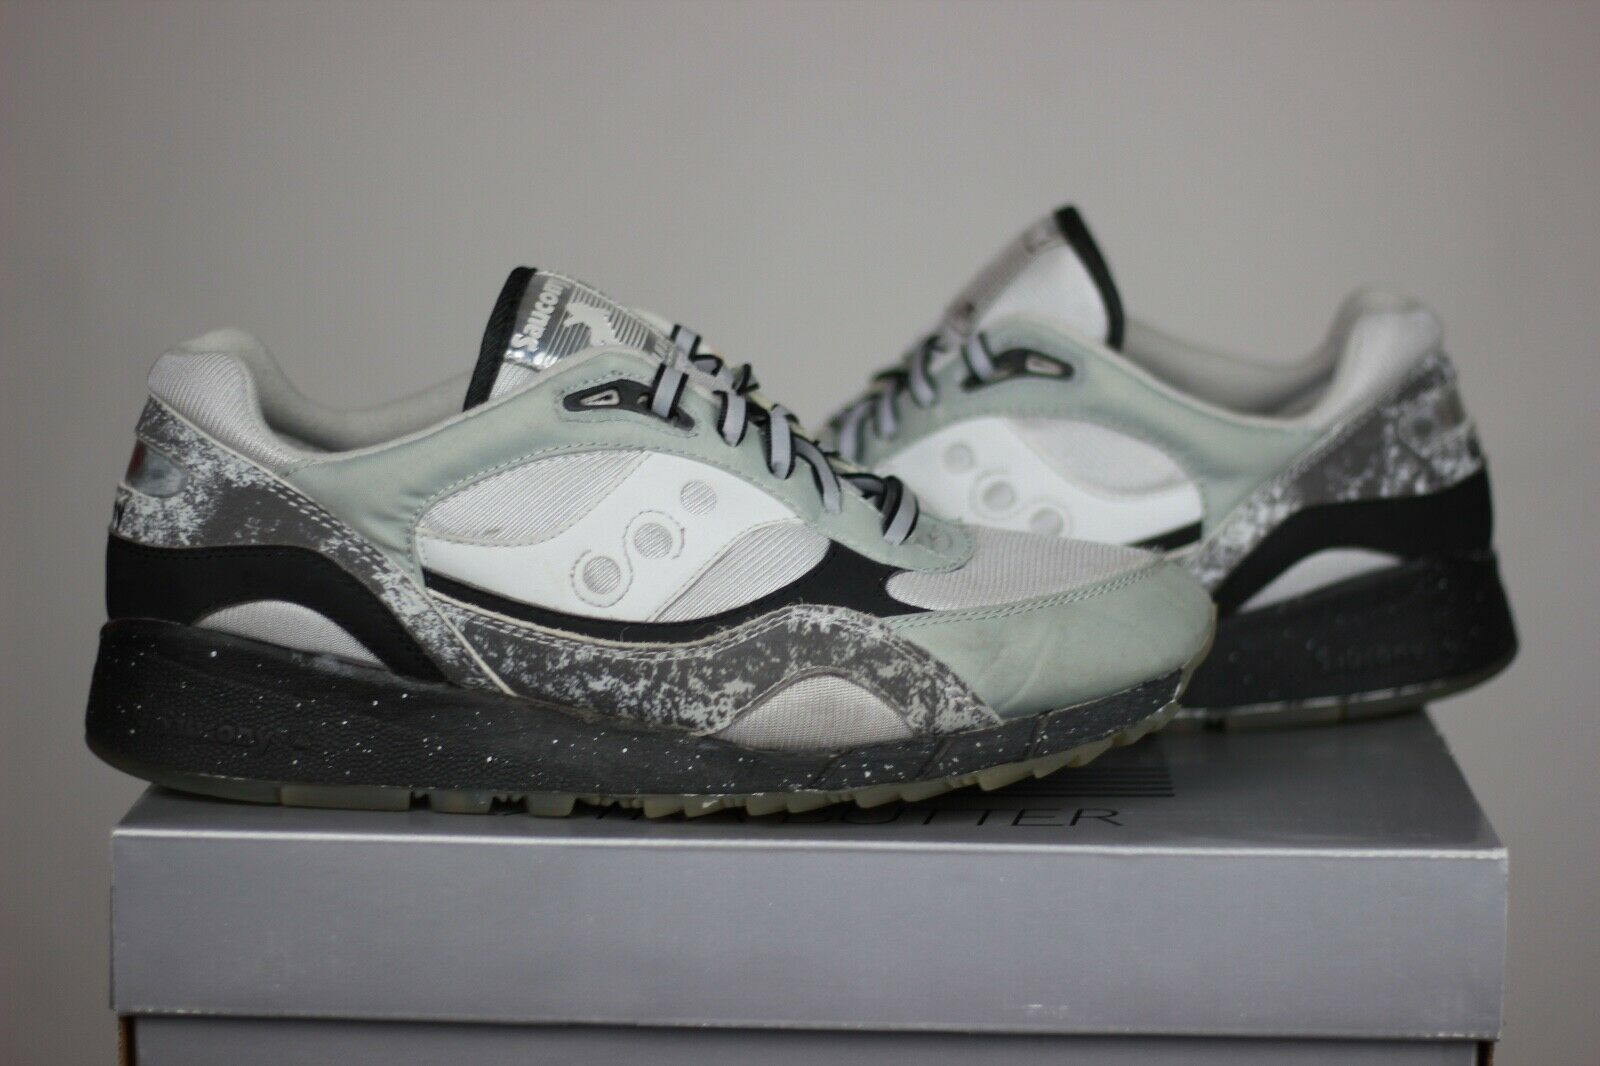 Extra Butter x Saucony Shadow 6000 Moonwalker Size 11.5